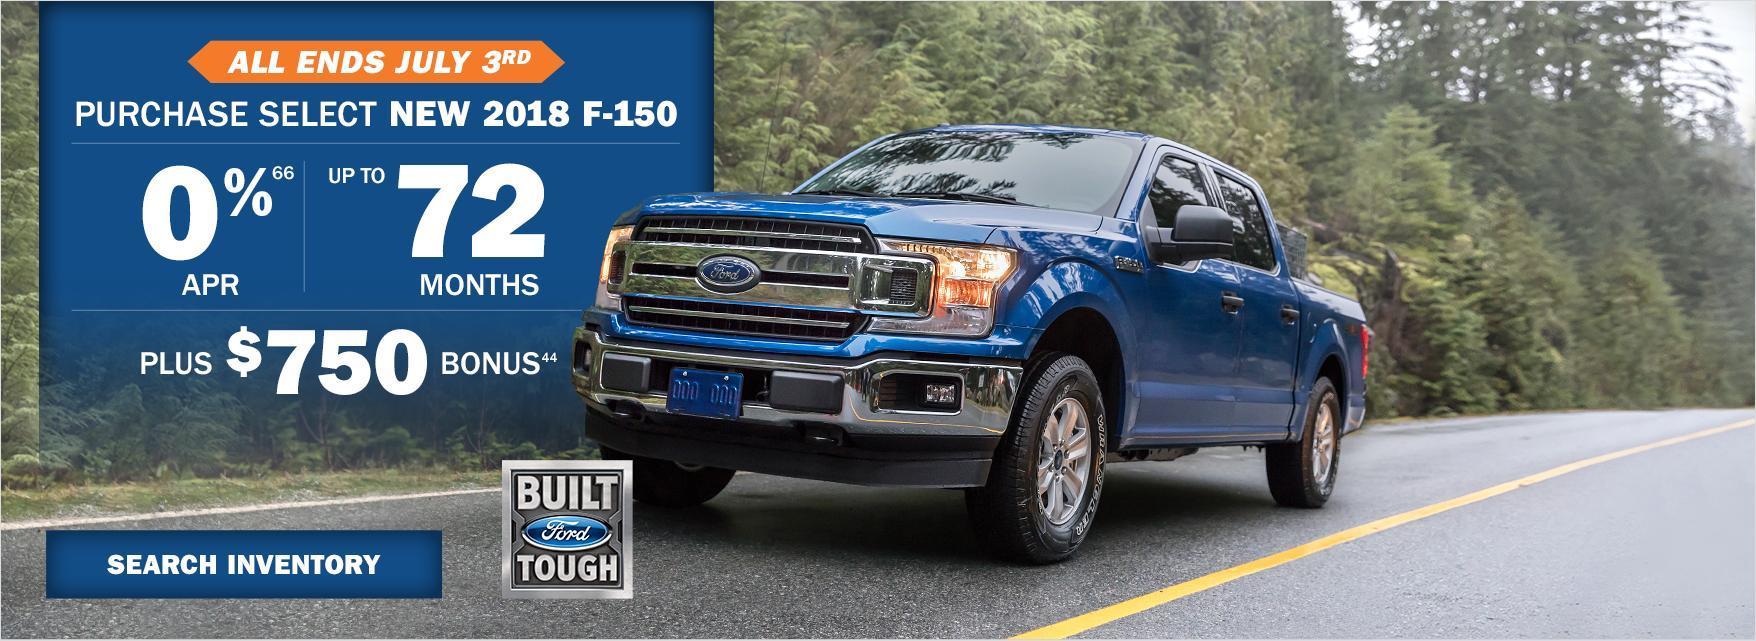 pickup truck autotrader checks for used shopping and guide tips sale ca ford buying newsfeatures